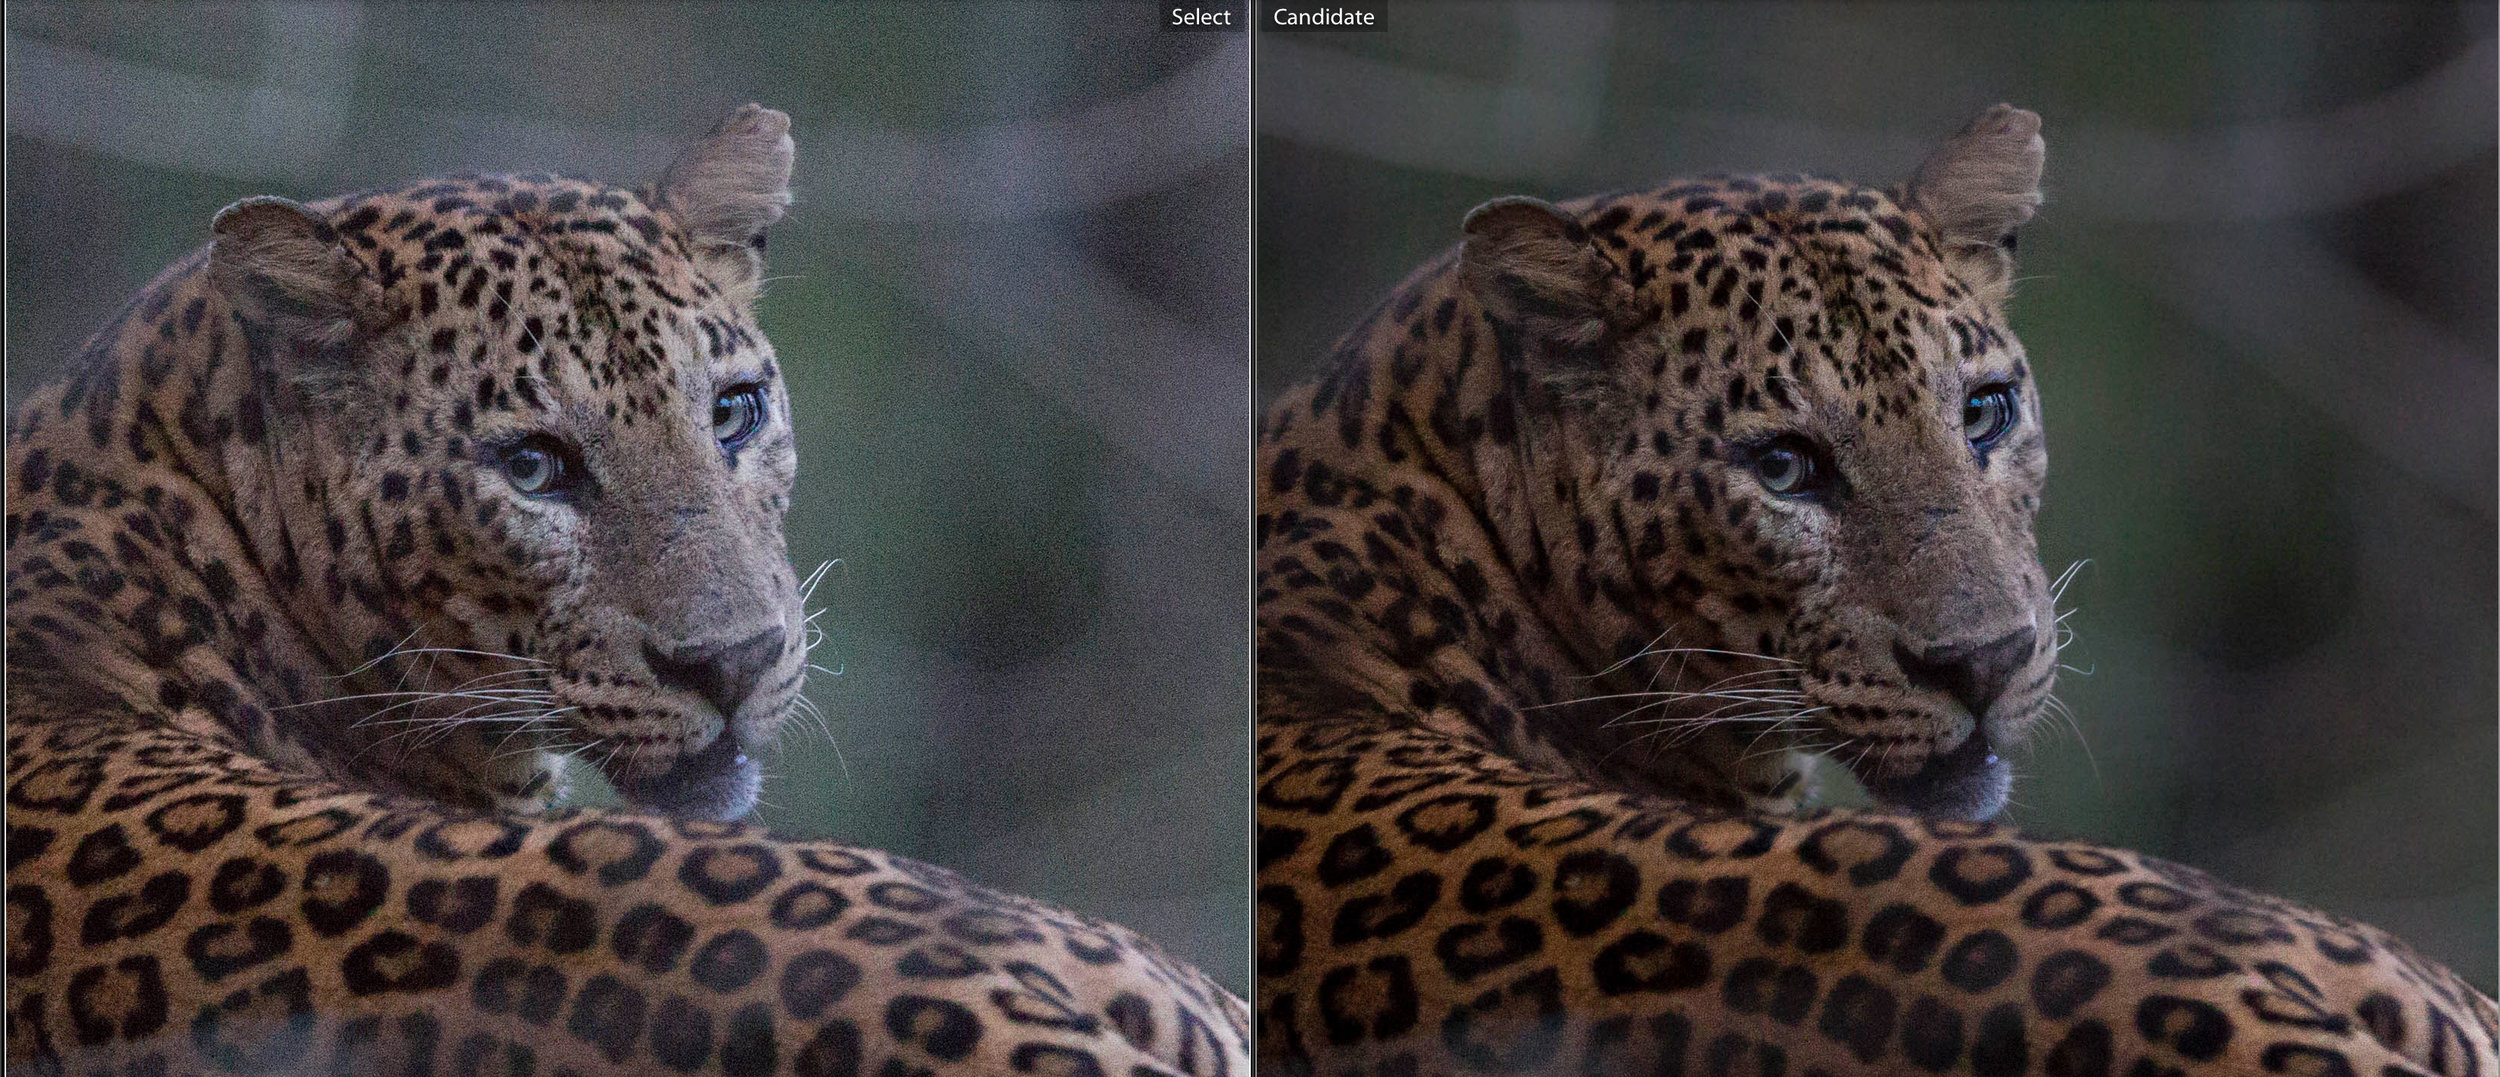 Before (left), and after (right) post-processing